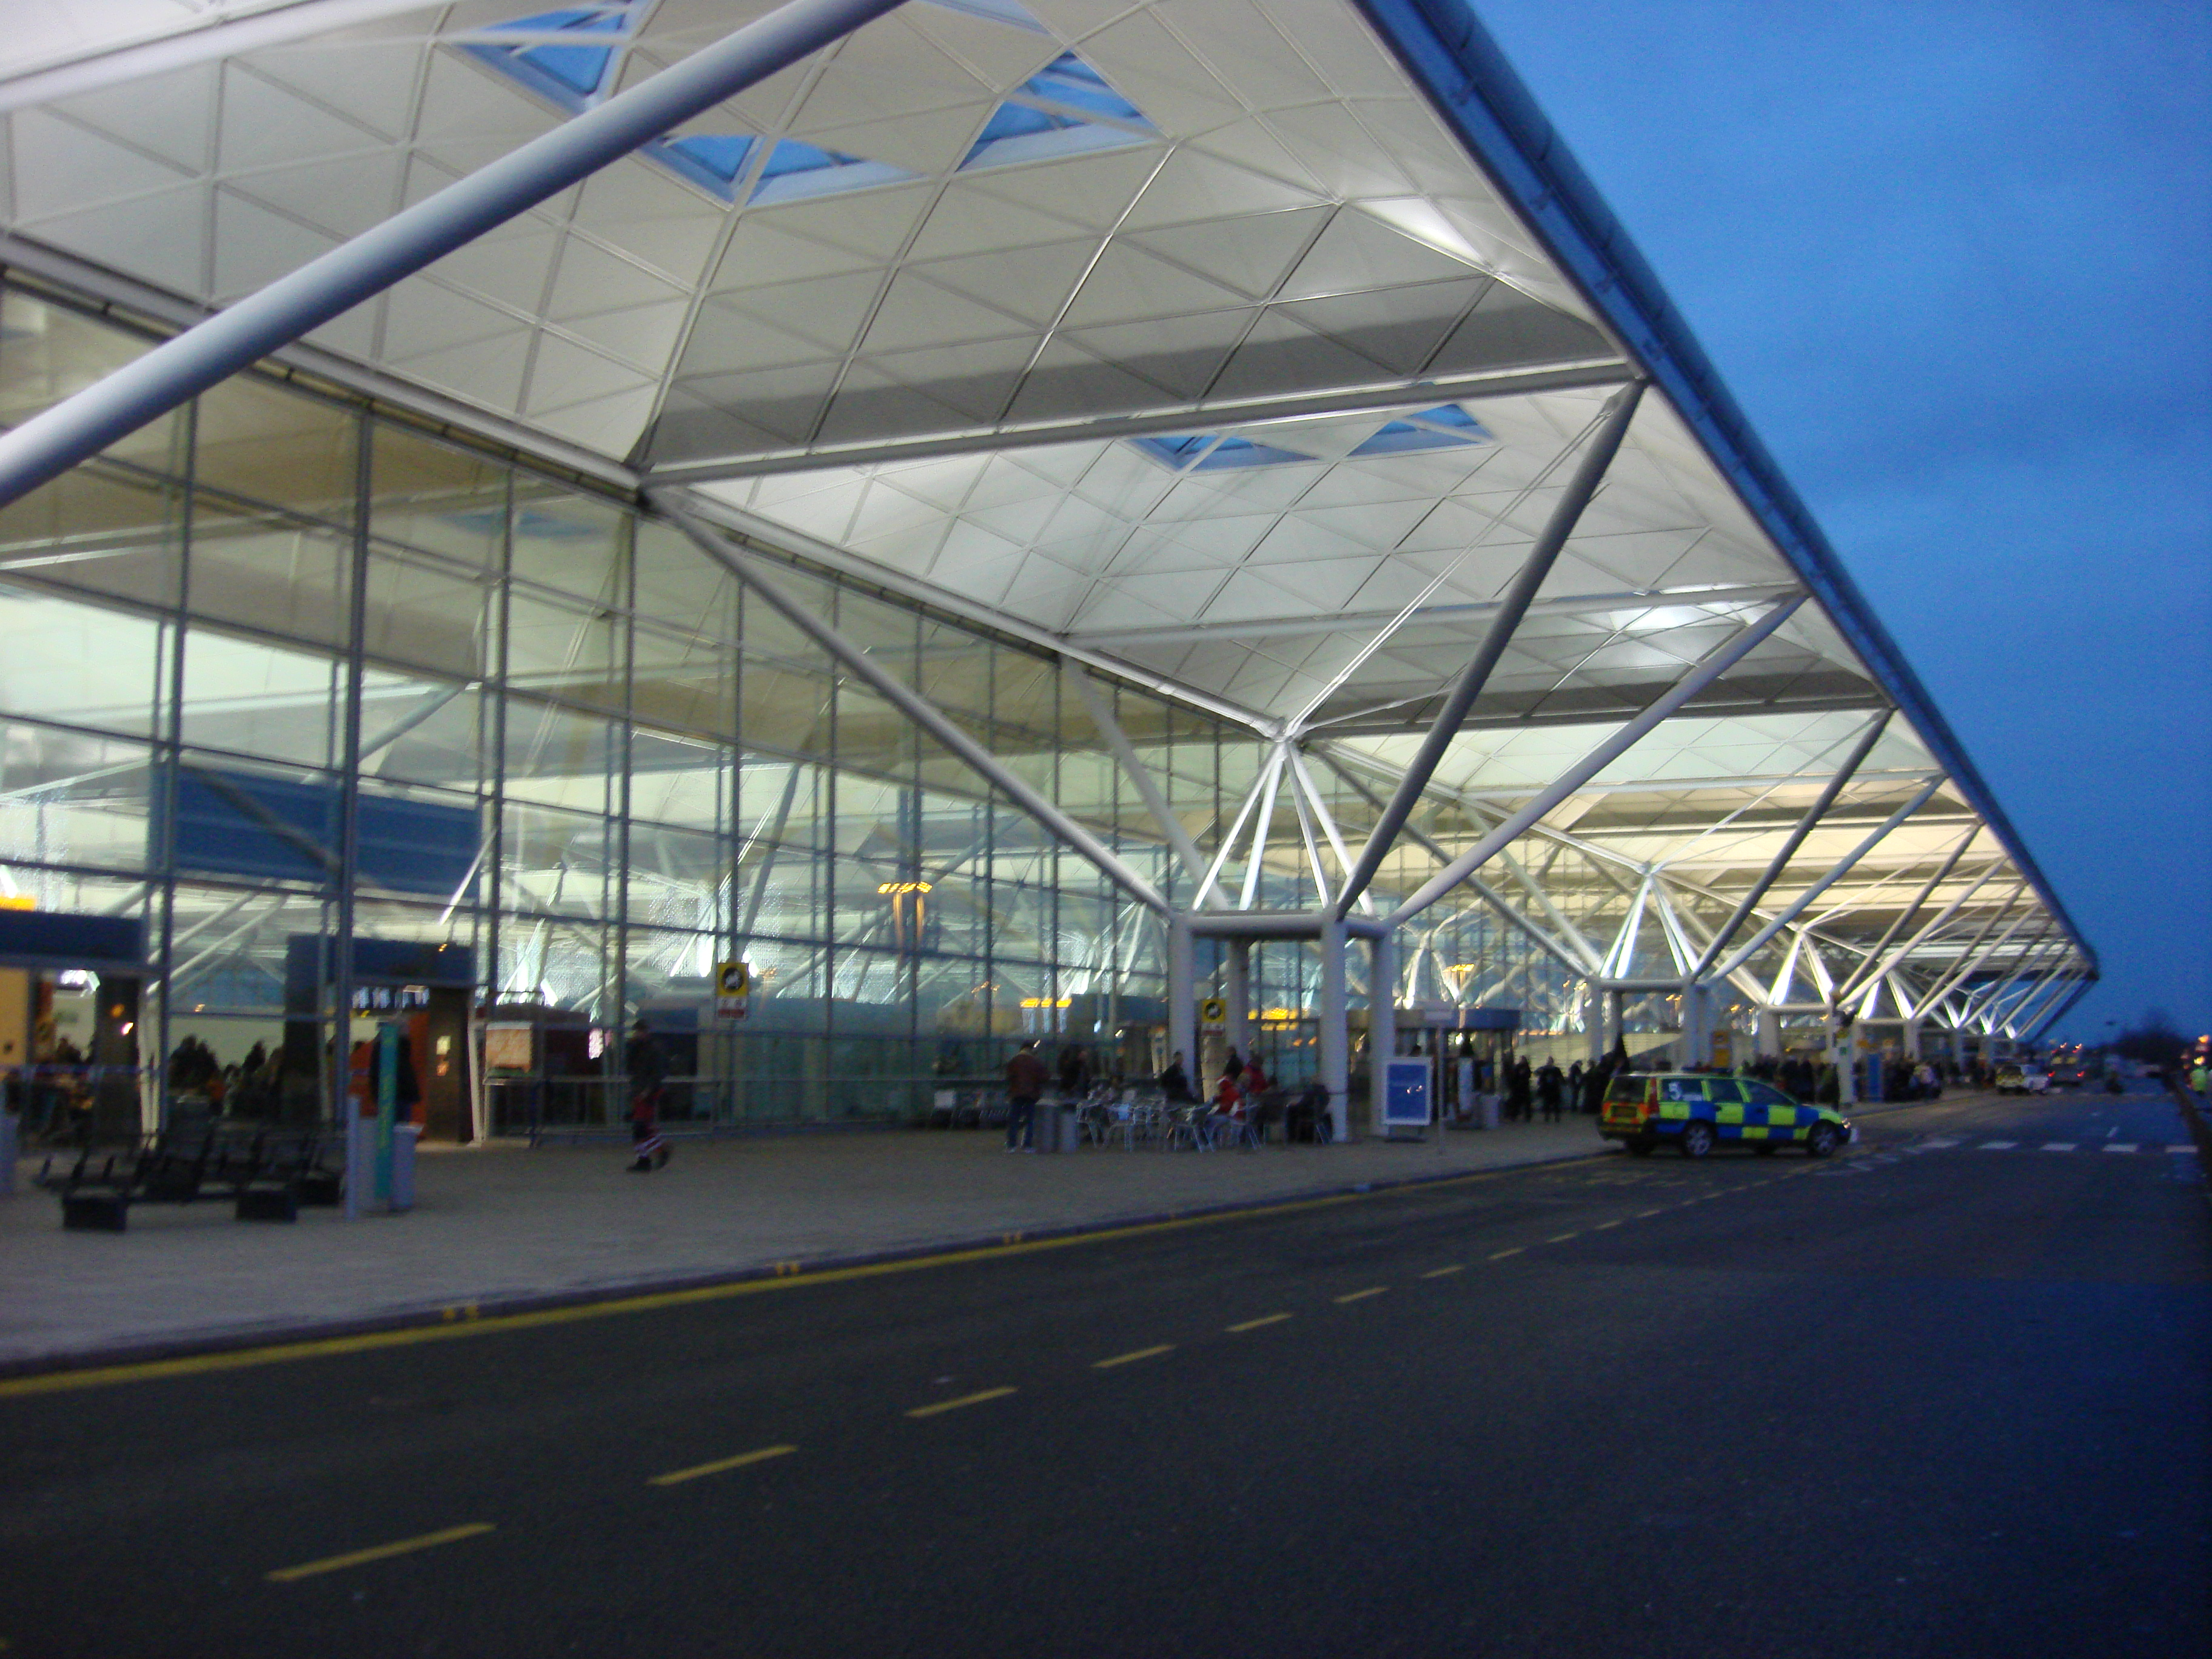 London Stansted Airport – Travel guide at Wikivoyage